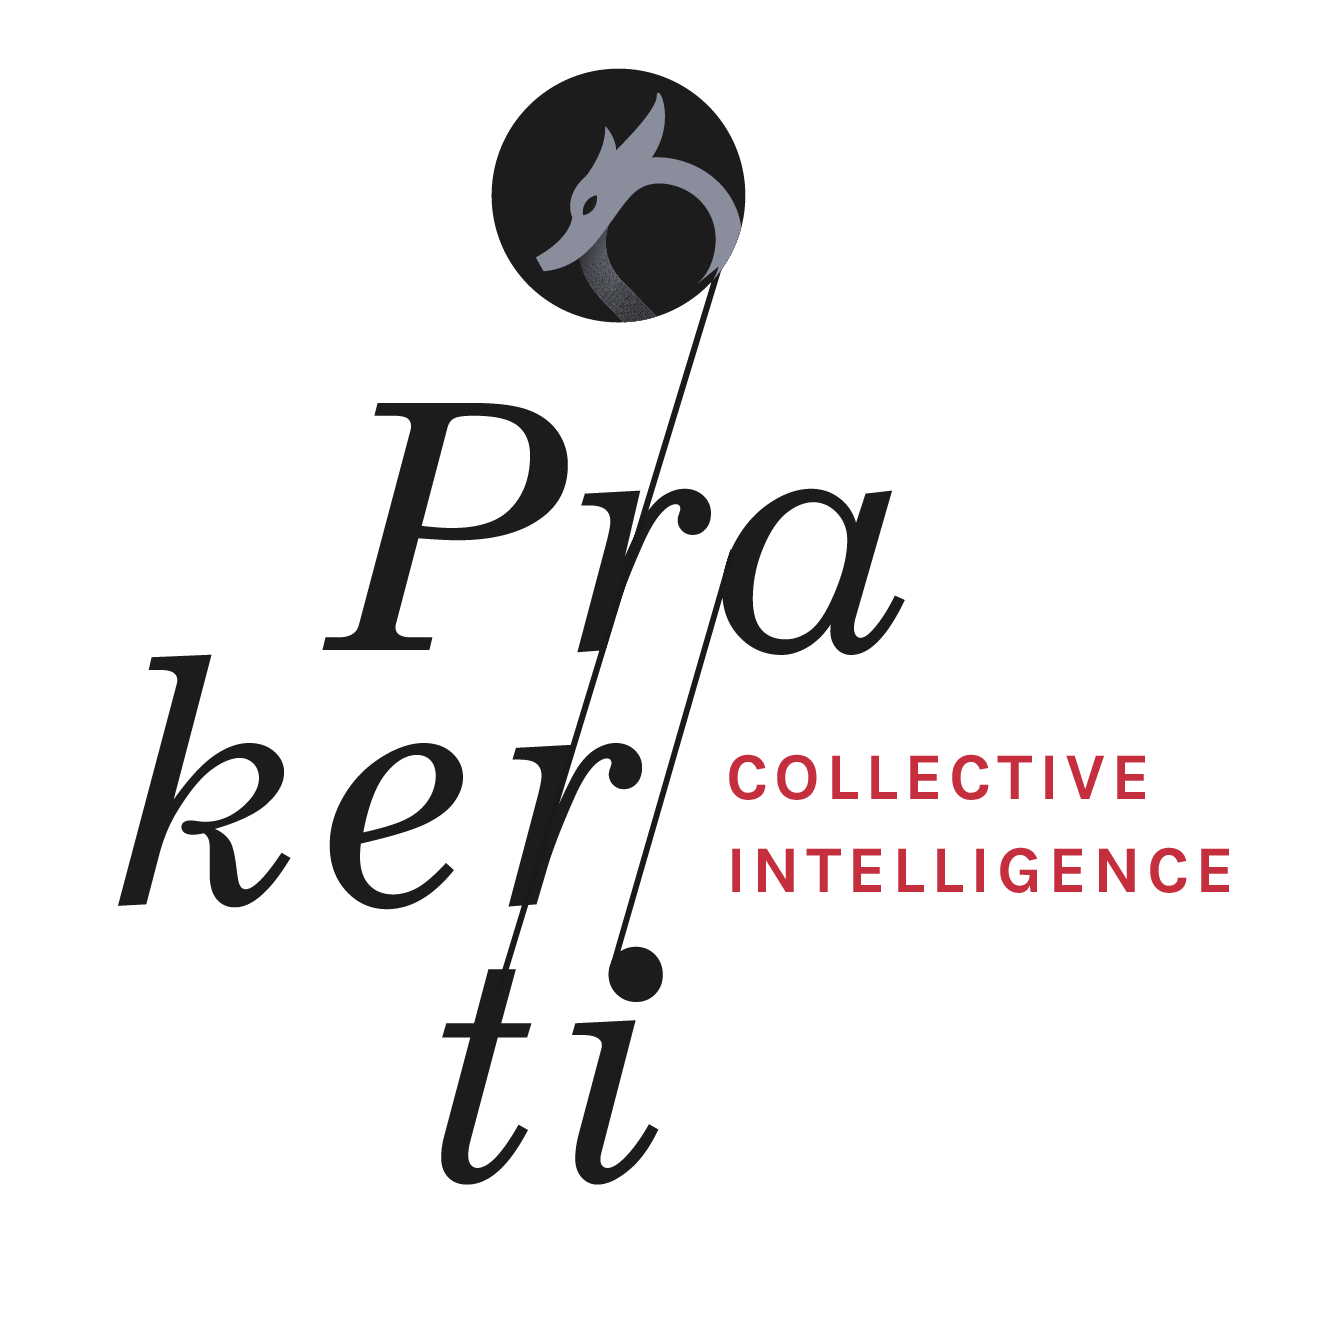 Prakerti collective intelligence image